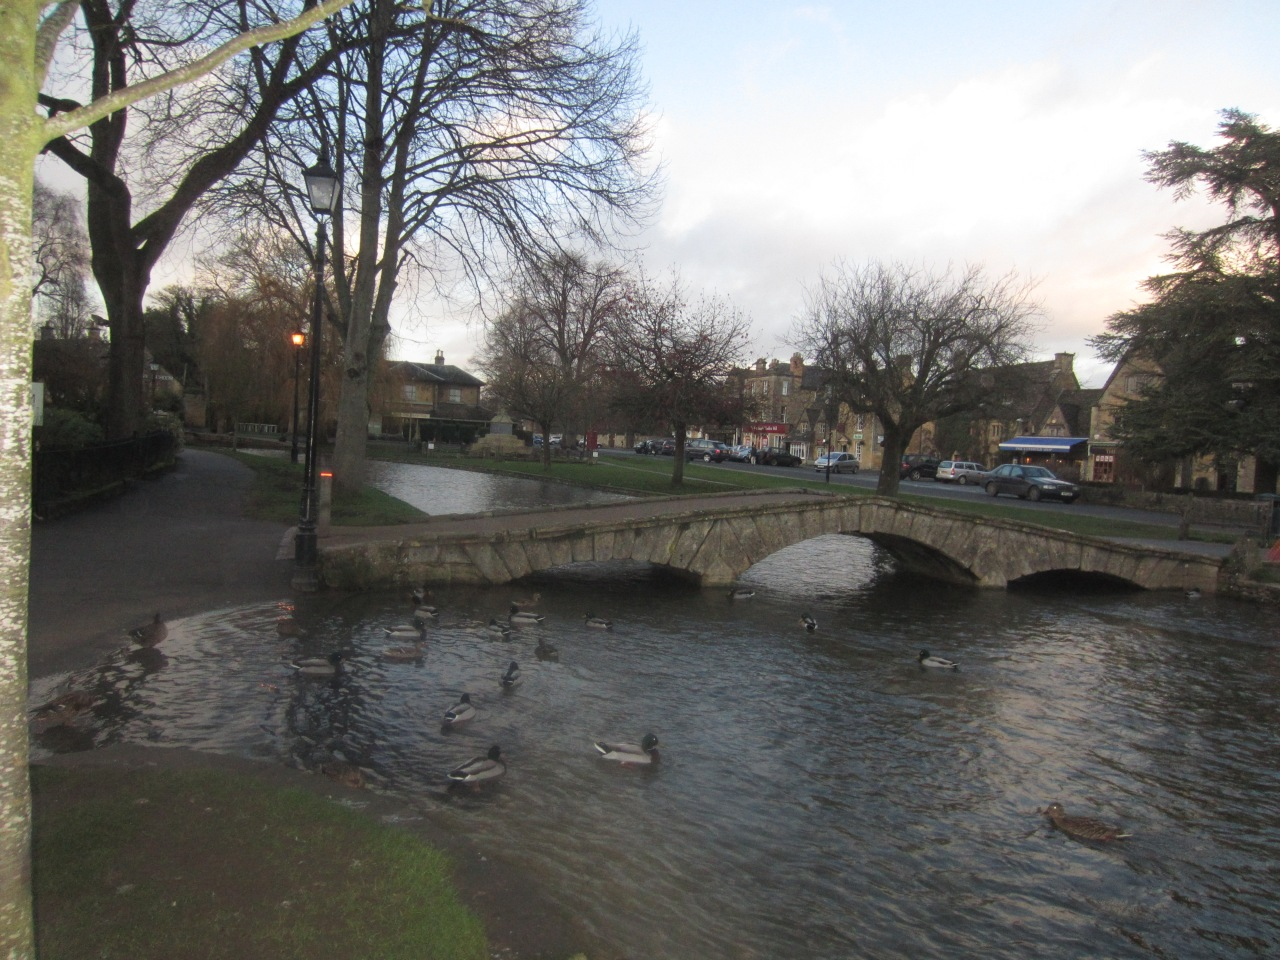 Bourton-on-the-Water: Venice of theCotswolds